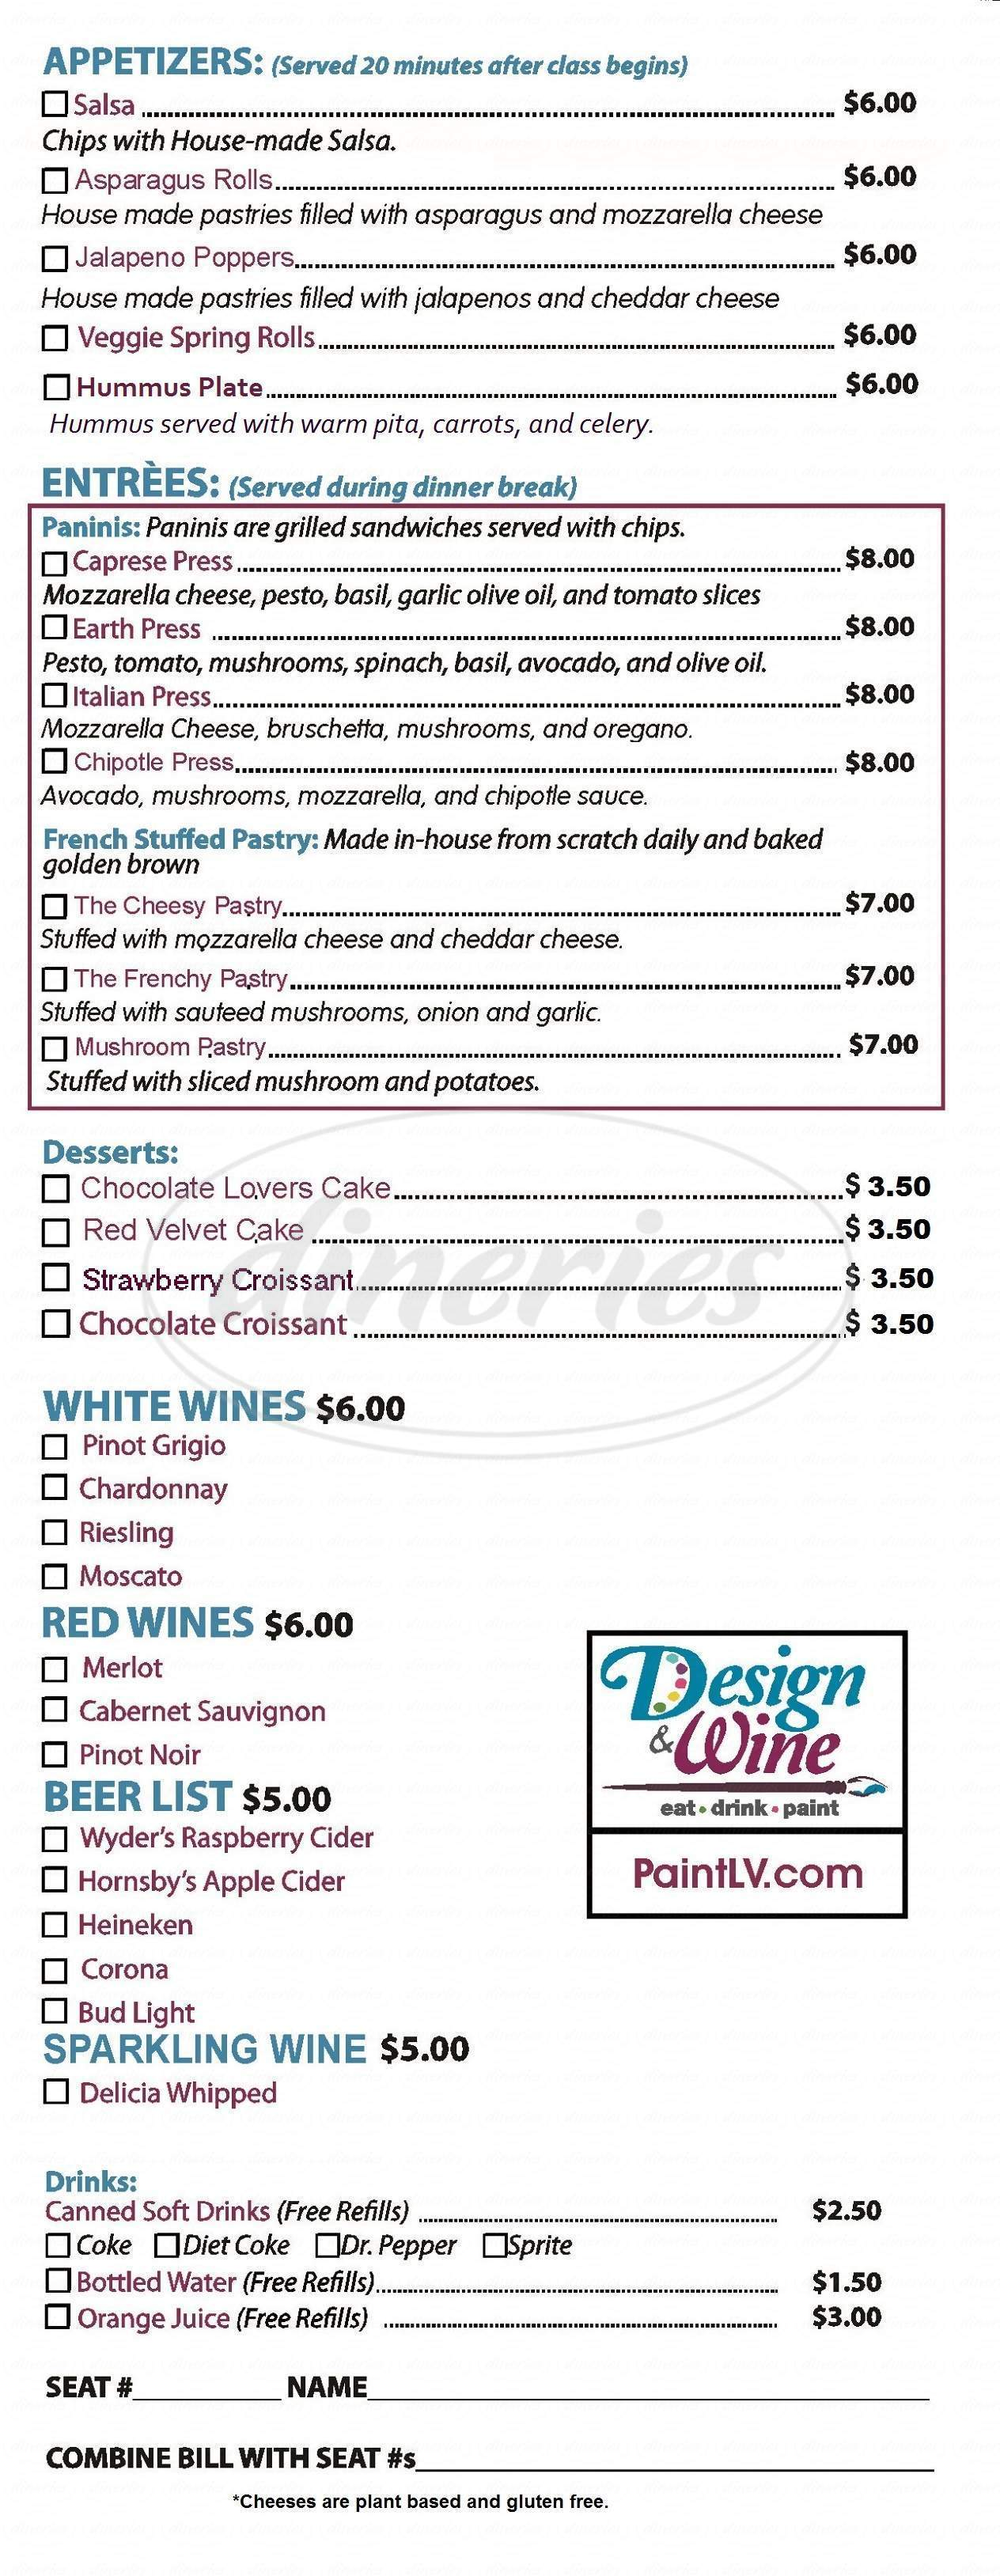 menu for Design & Wine